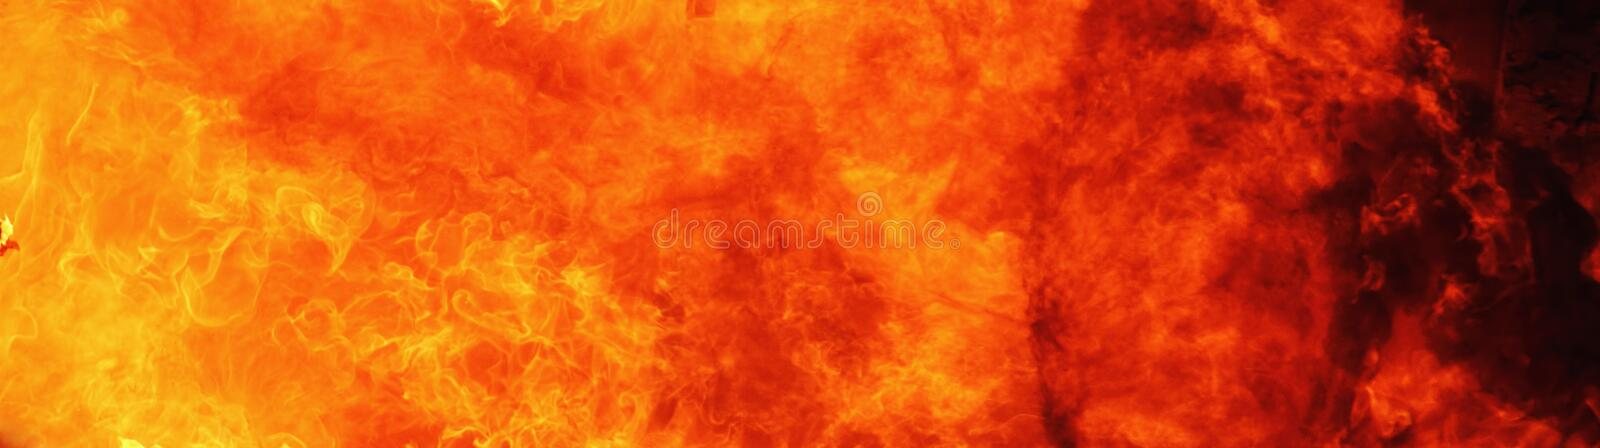 Fire flame background as symbol of hell and eternal pain stock photography